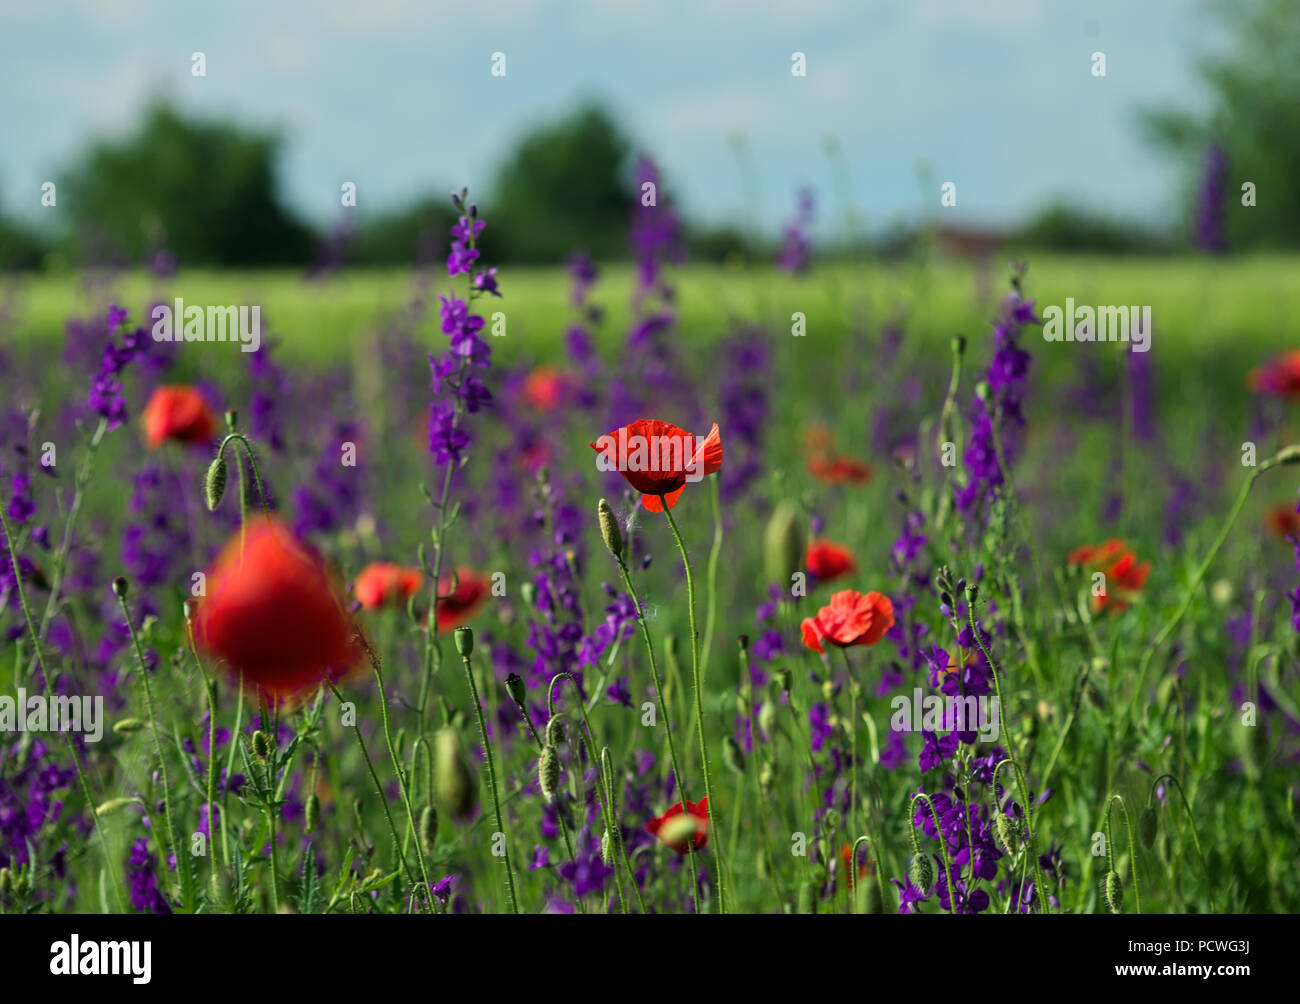 Poppy Flower In Focus Surrounded With Field Plants With Red And